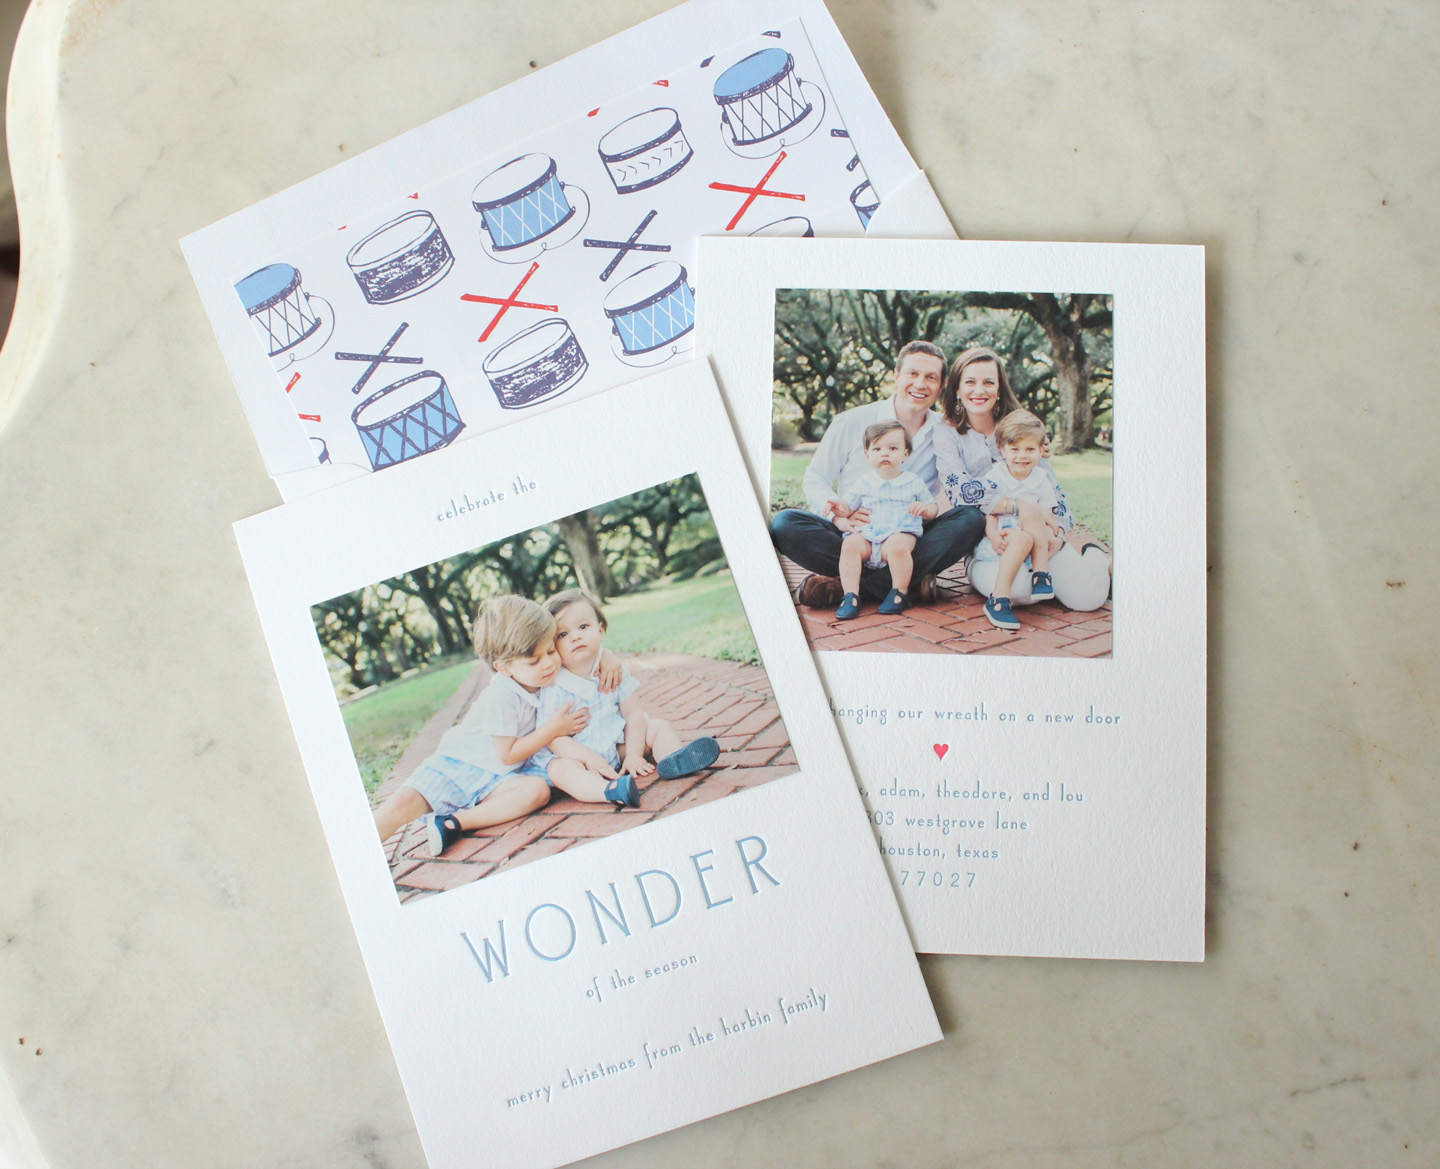 wonder blue and red cover